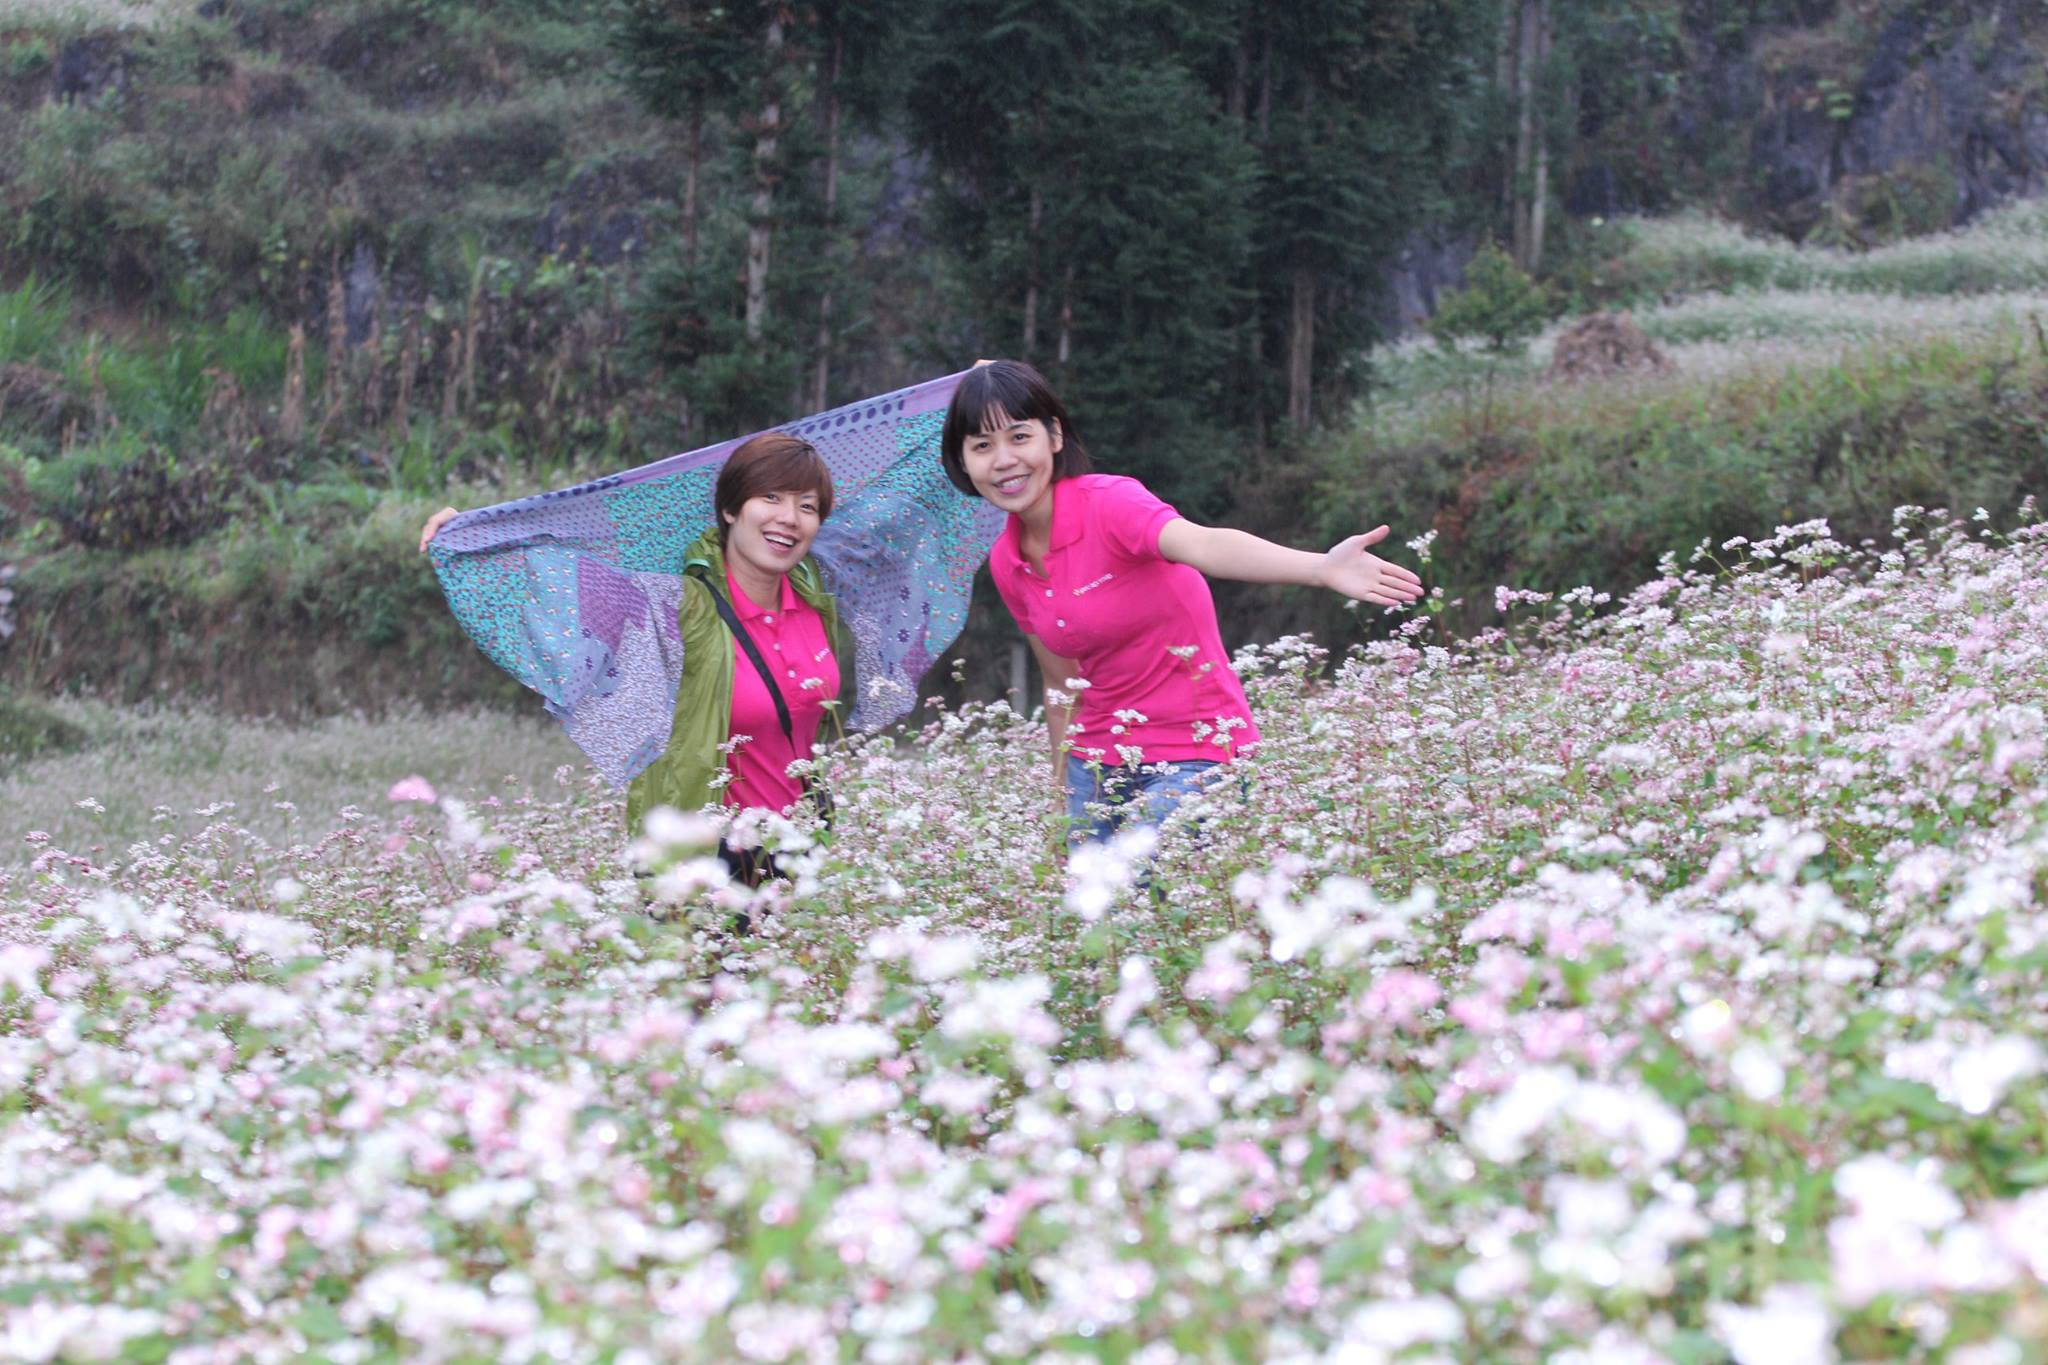 Bucket flowers in Long Luong attracts many tourists every November